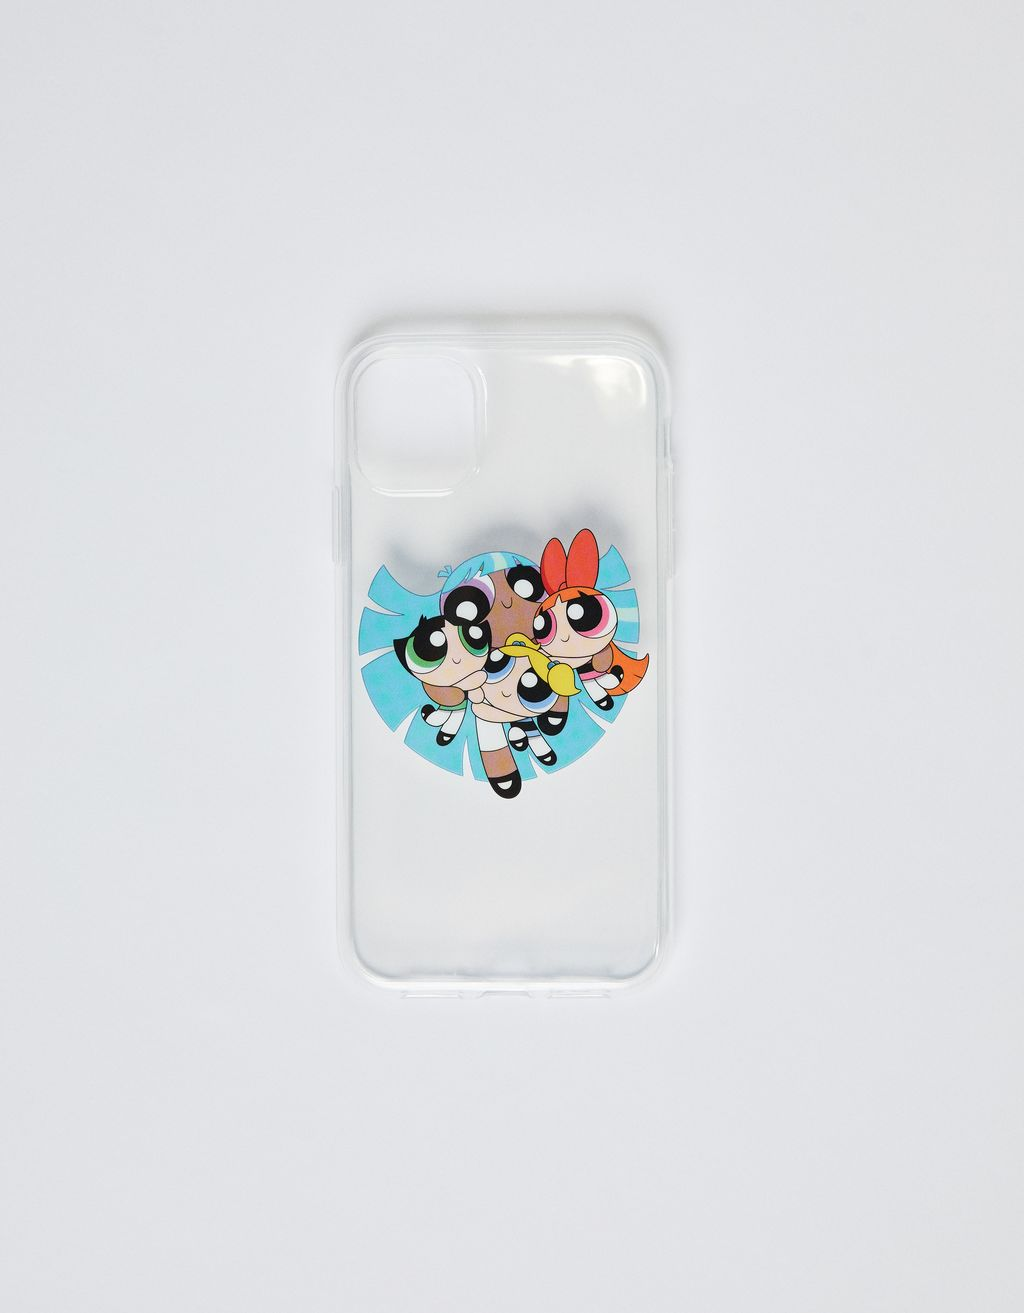 Powerpuff Girls iPhone 11 case